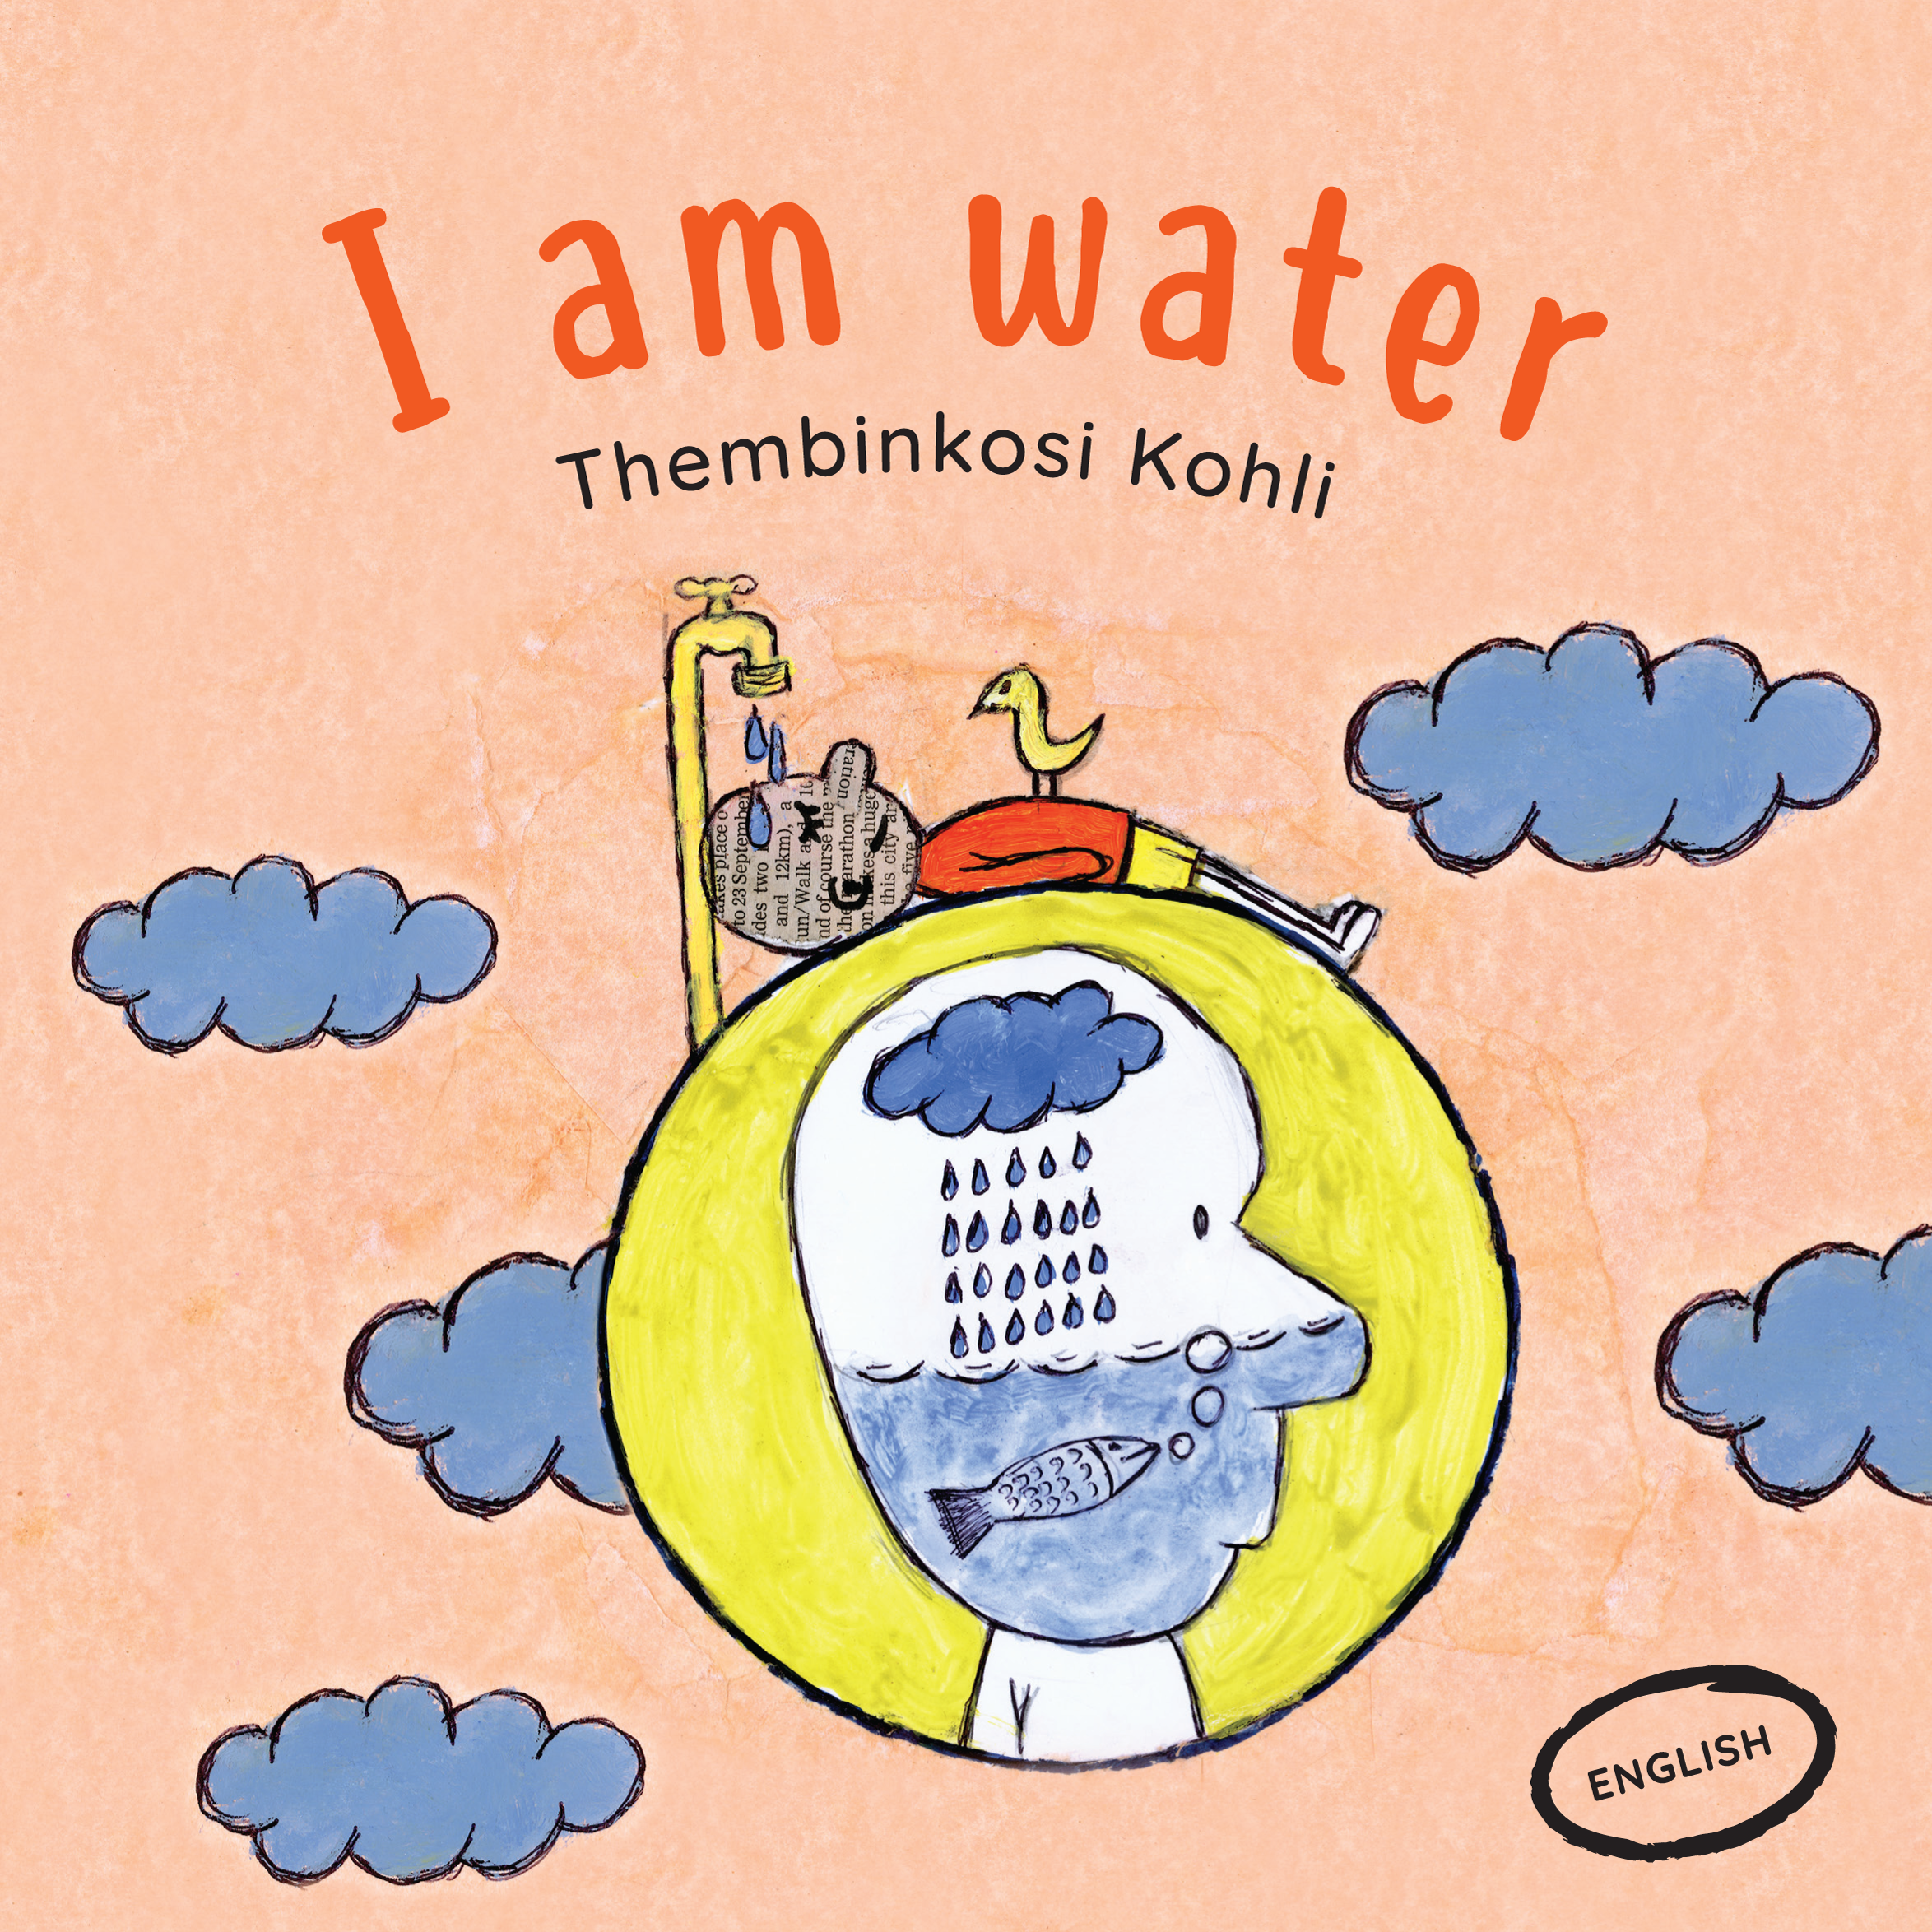 I am water - Thembinkosi Kohli